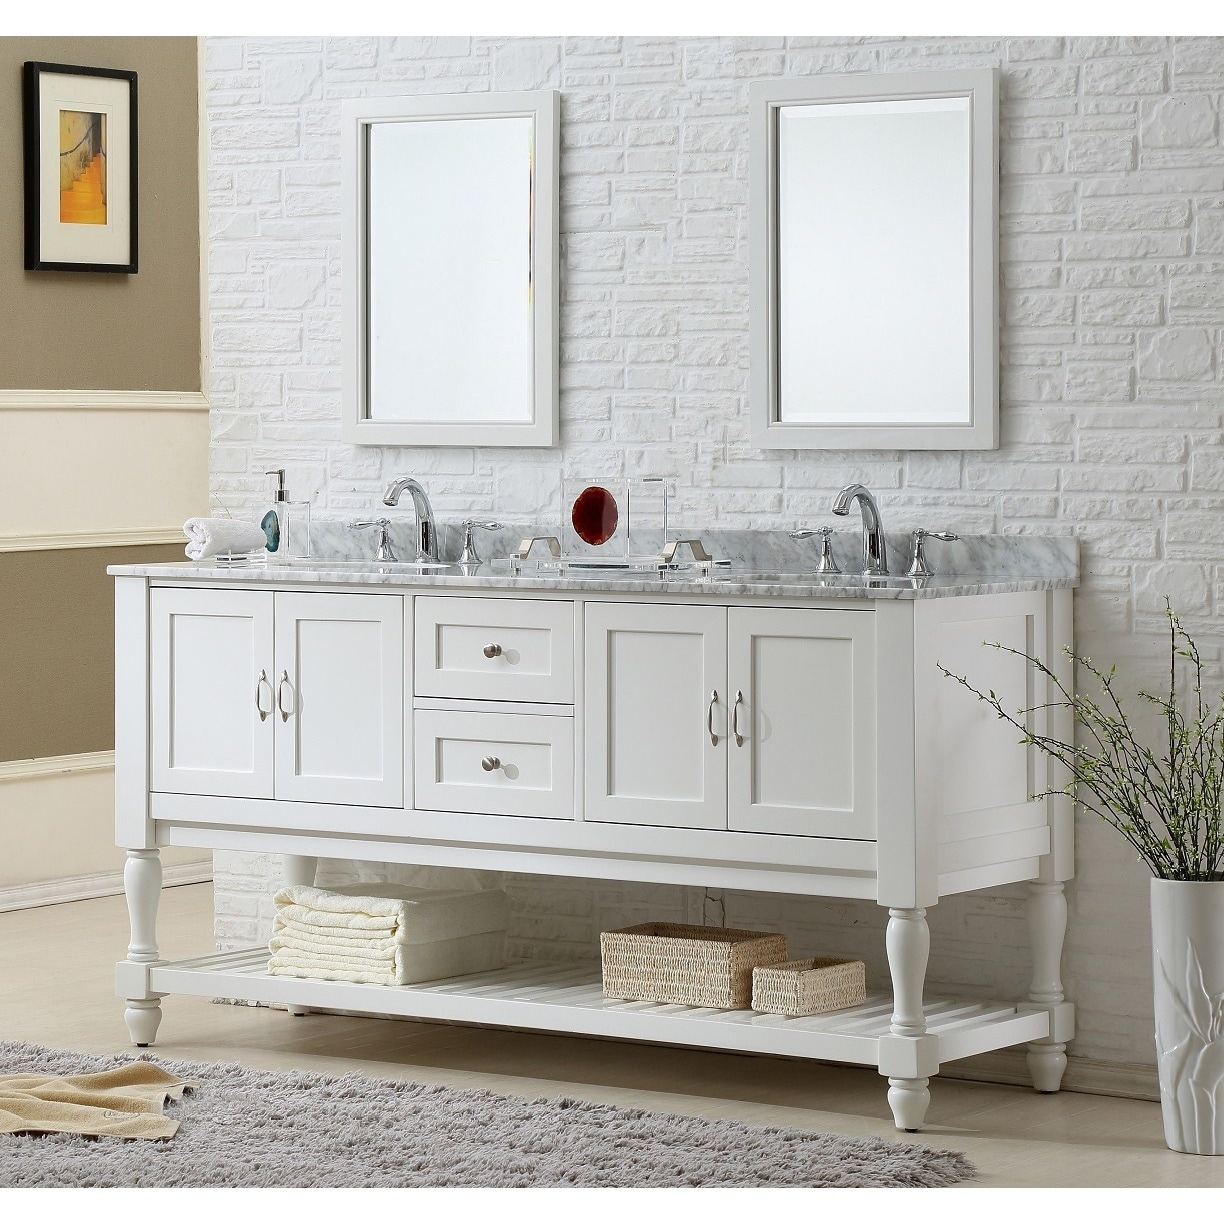 Direct Vanity 70 Inch Pearl White Mission Turnleg Double Vanity Sink Cabinet